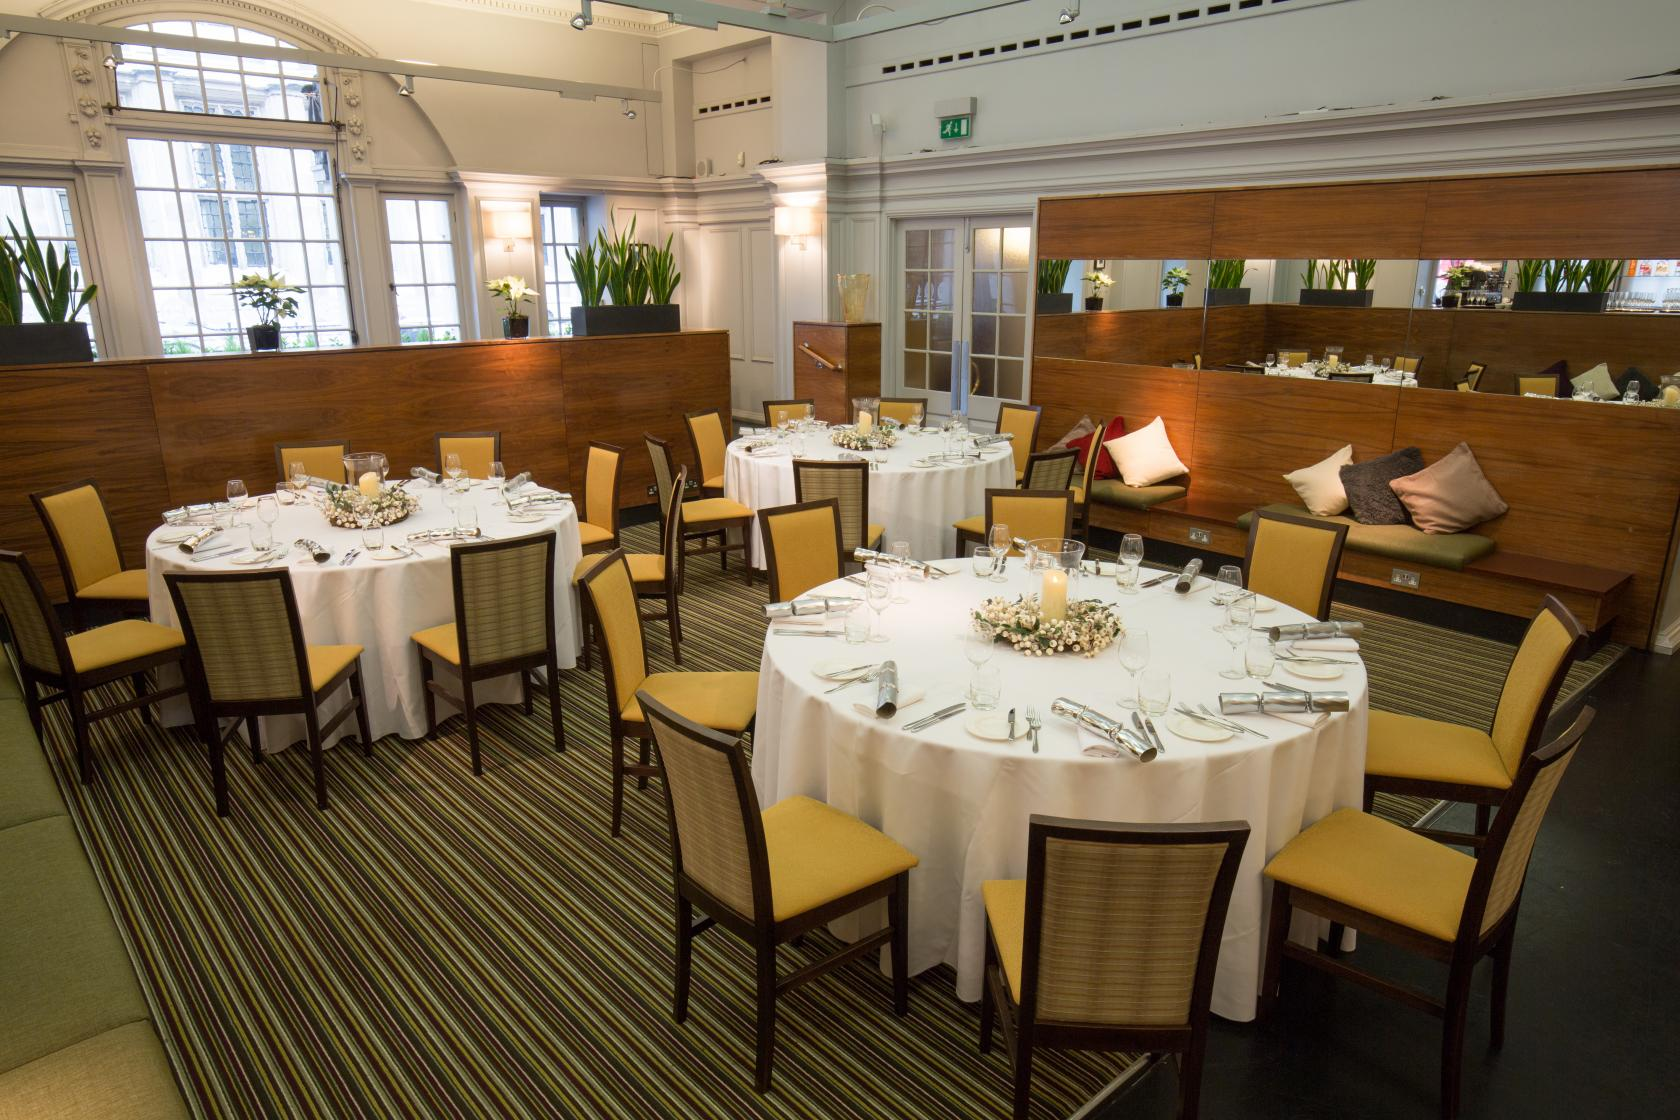 113 chancery lane for private venue hire prices for Cafe le jardin bell lane london